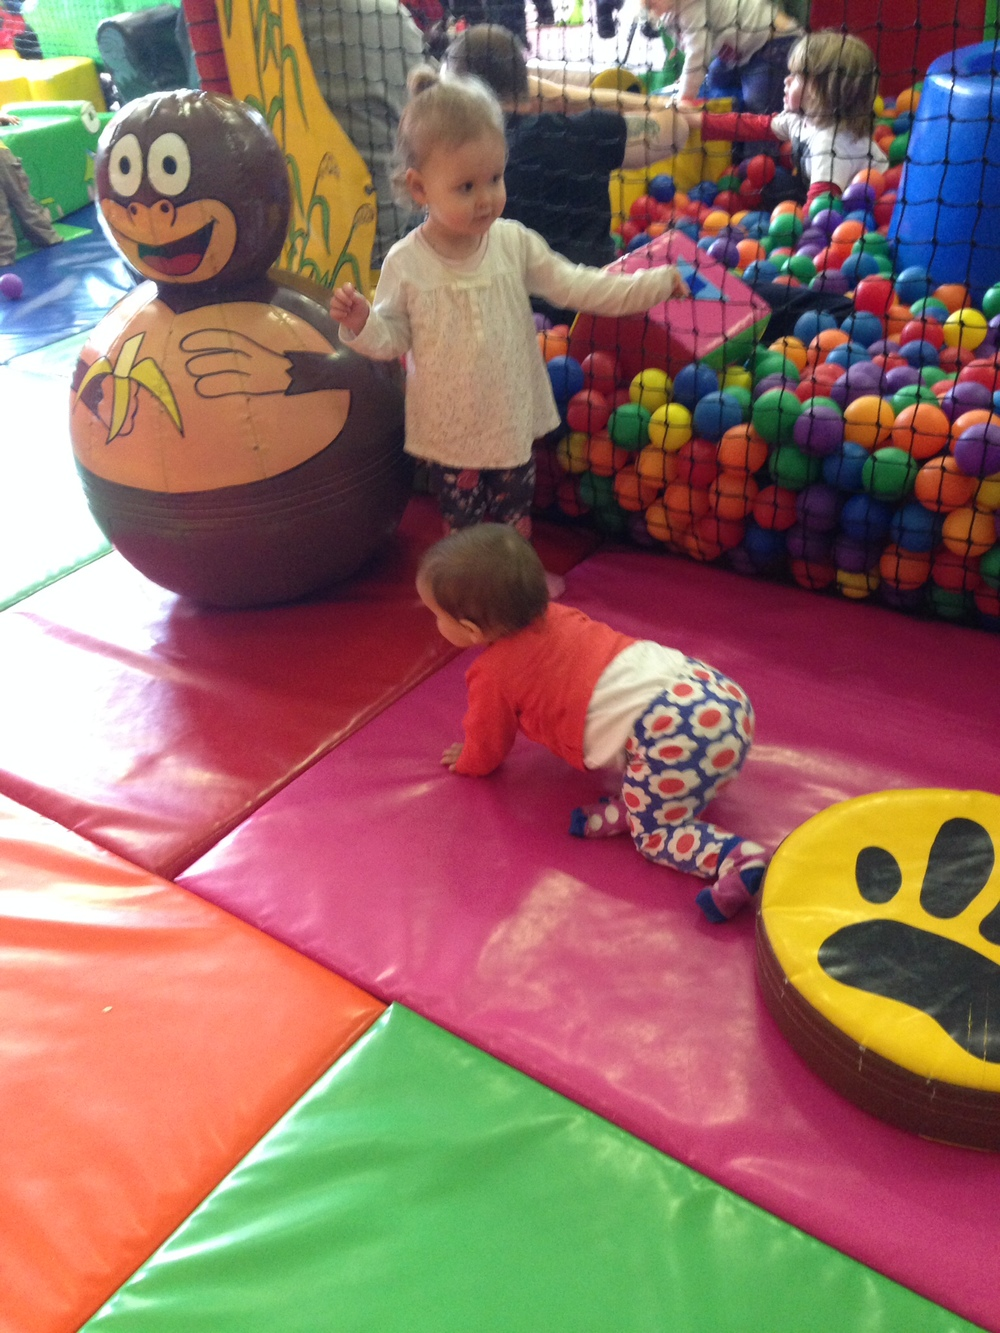 Exploring the soft play